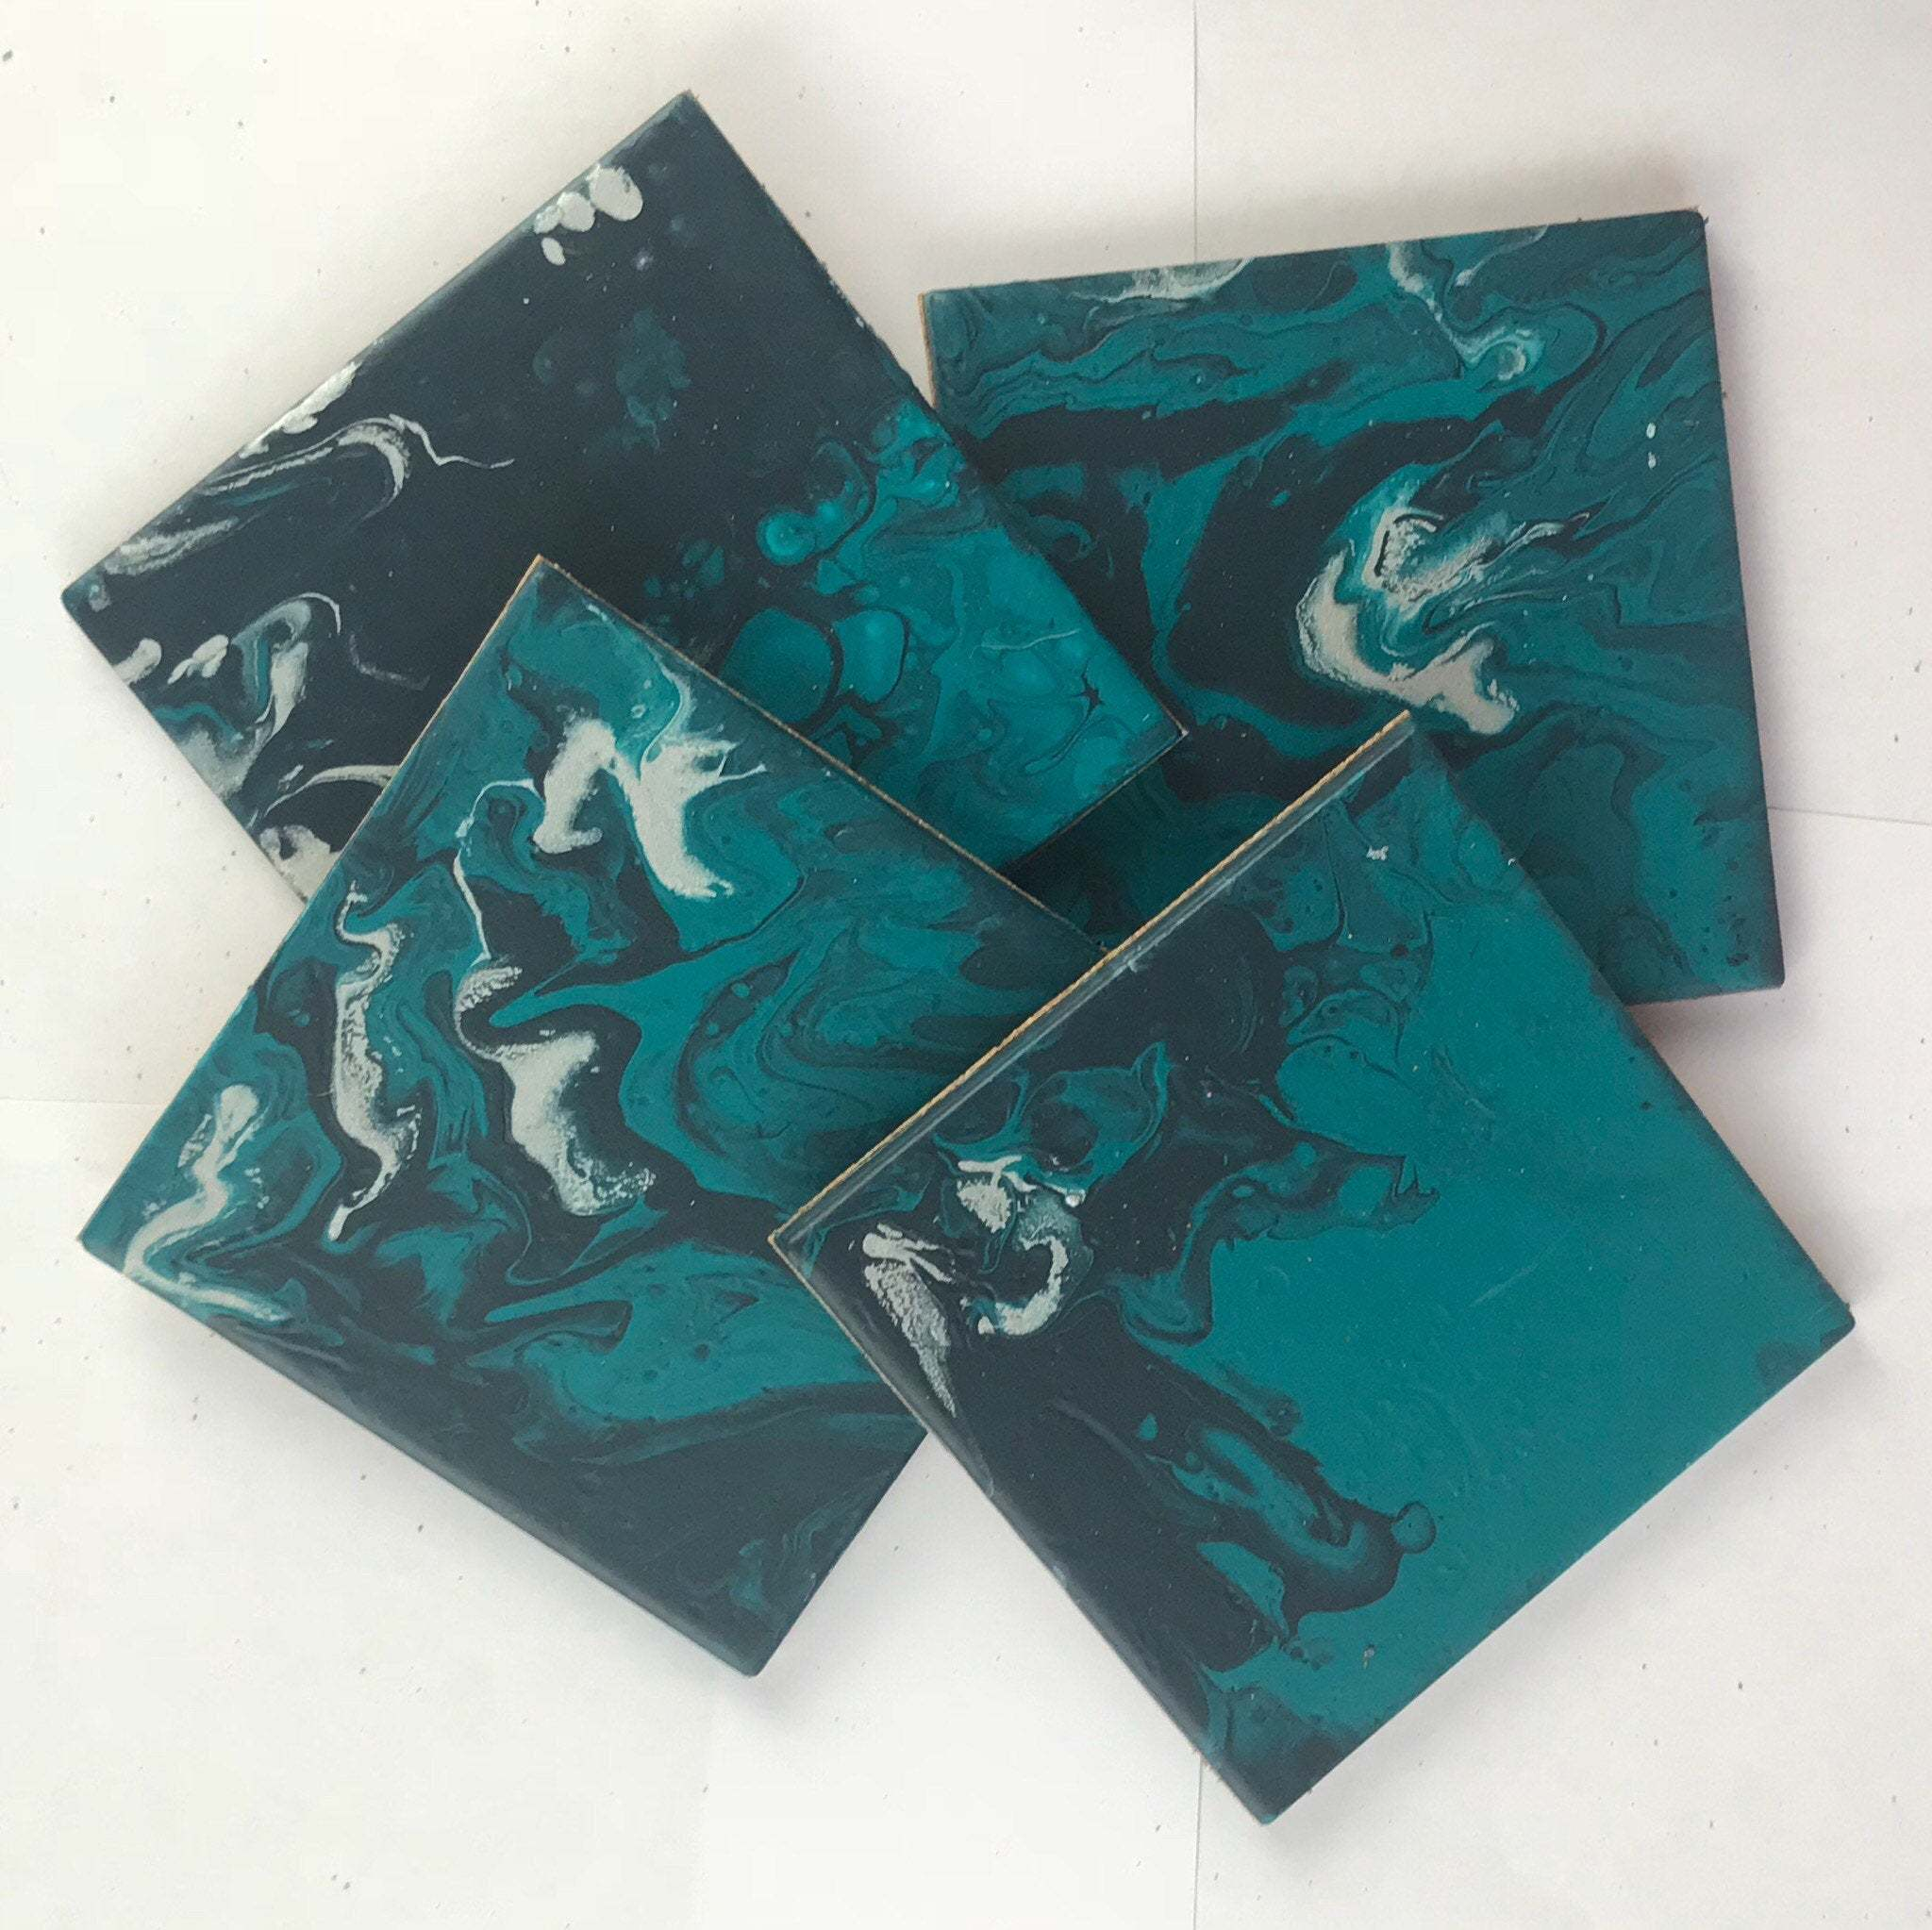 Set Of 4 Ceramic Coasters, Handmade With Acrylic Paint Pour In Teals, Made  To Order Requests Taken, Matching Set Of Coasters